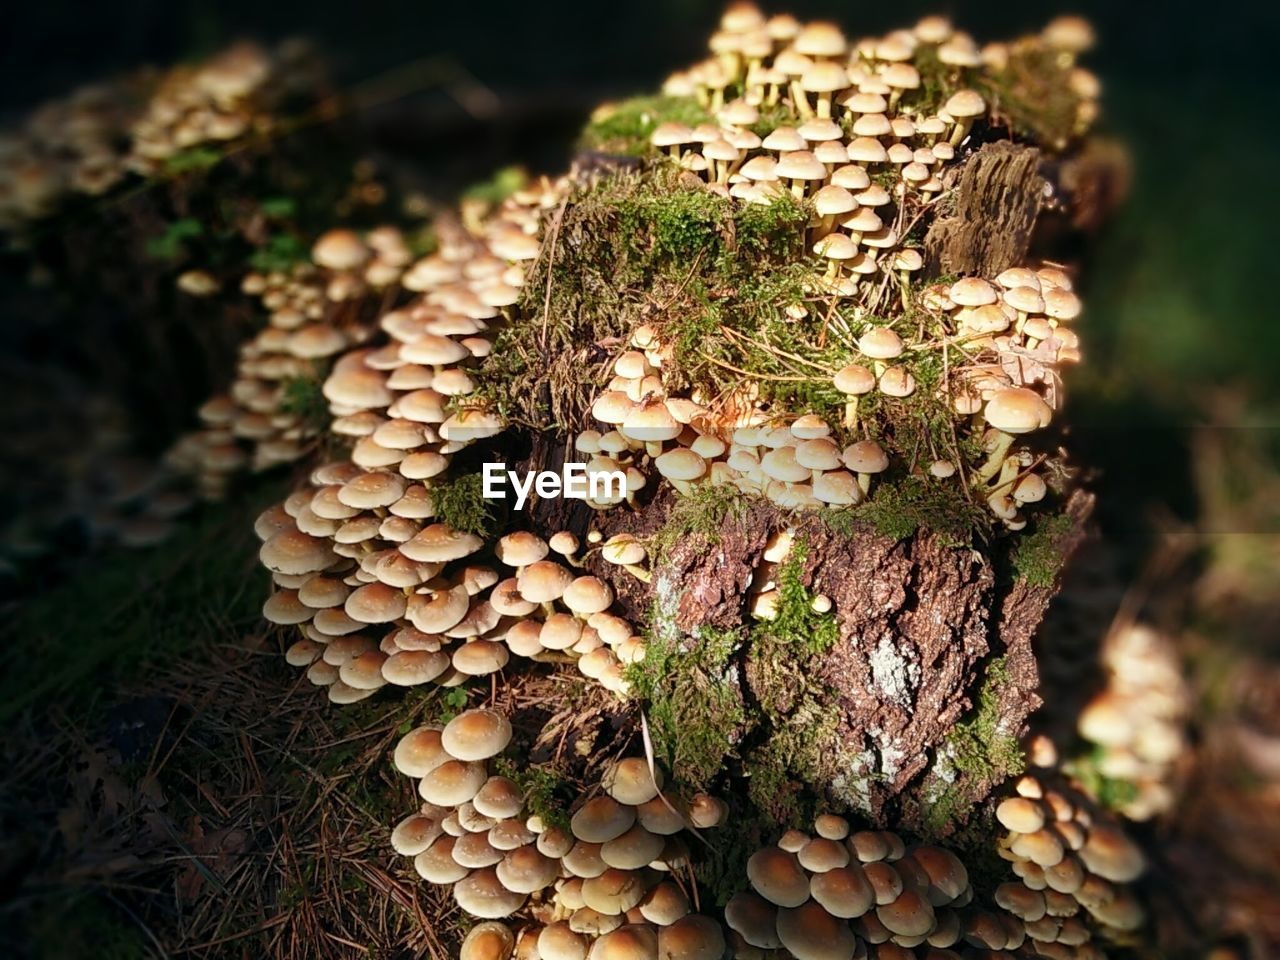 CLOSE-UP OF MUSHROOMS IN FOREST